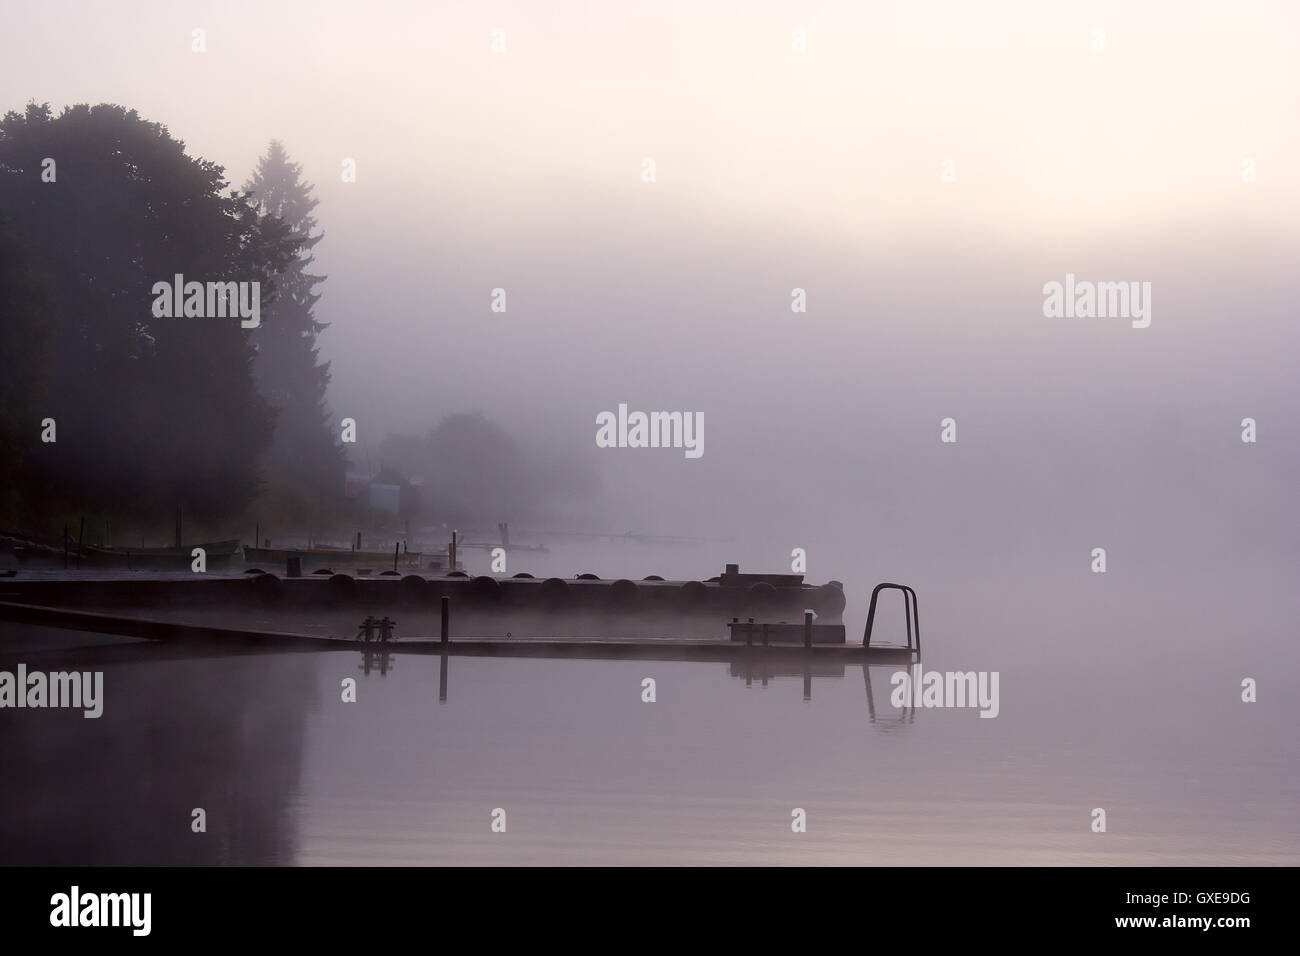 Morning nature scene (landscape): fog (mist) reflected in the water surface along with trees and moorage (quay, - Stock Image